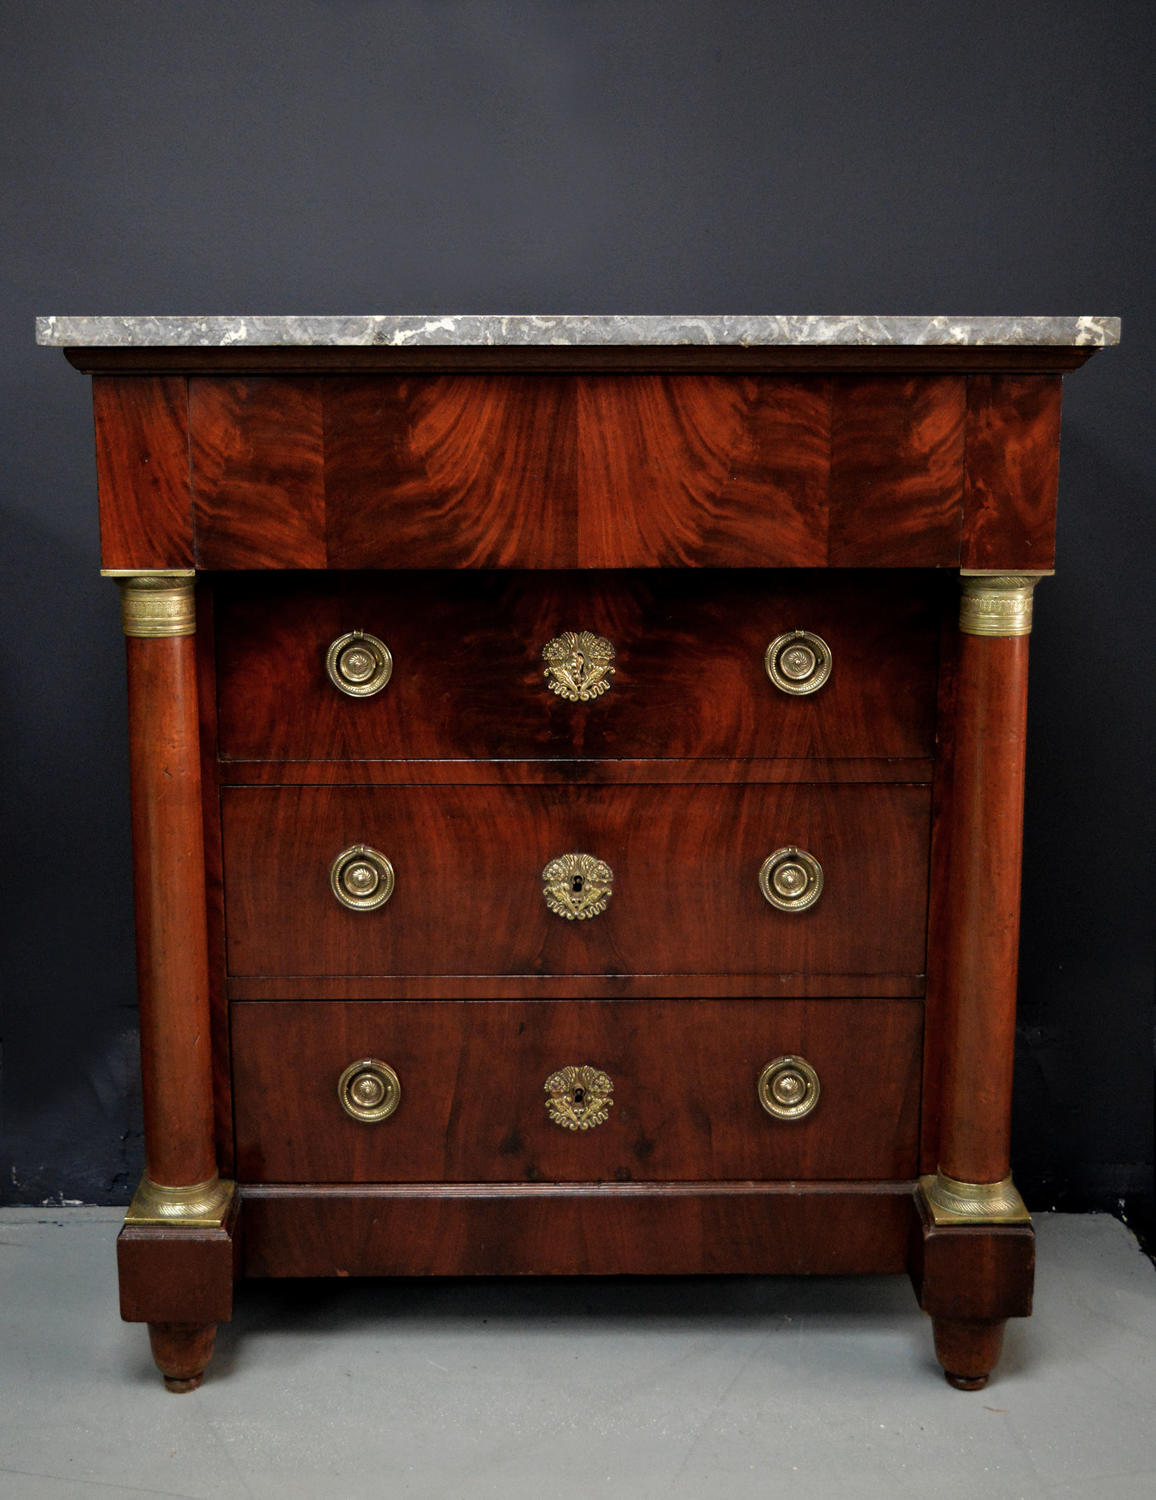 Small 3/4 size 19thC Empire Commode